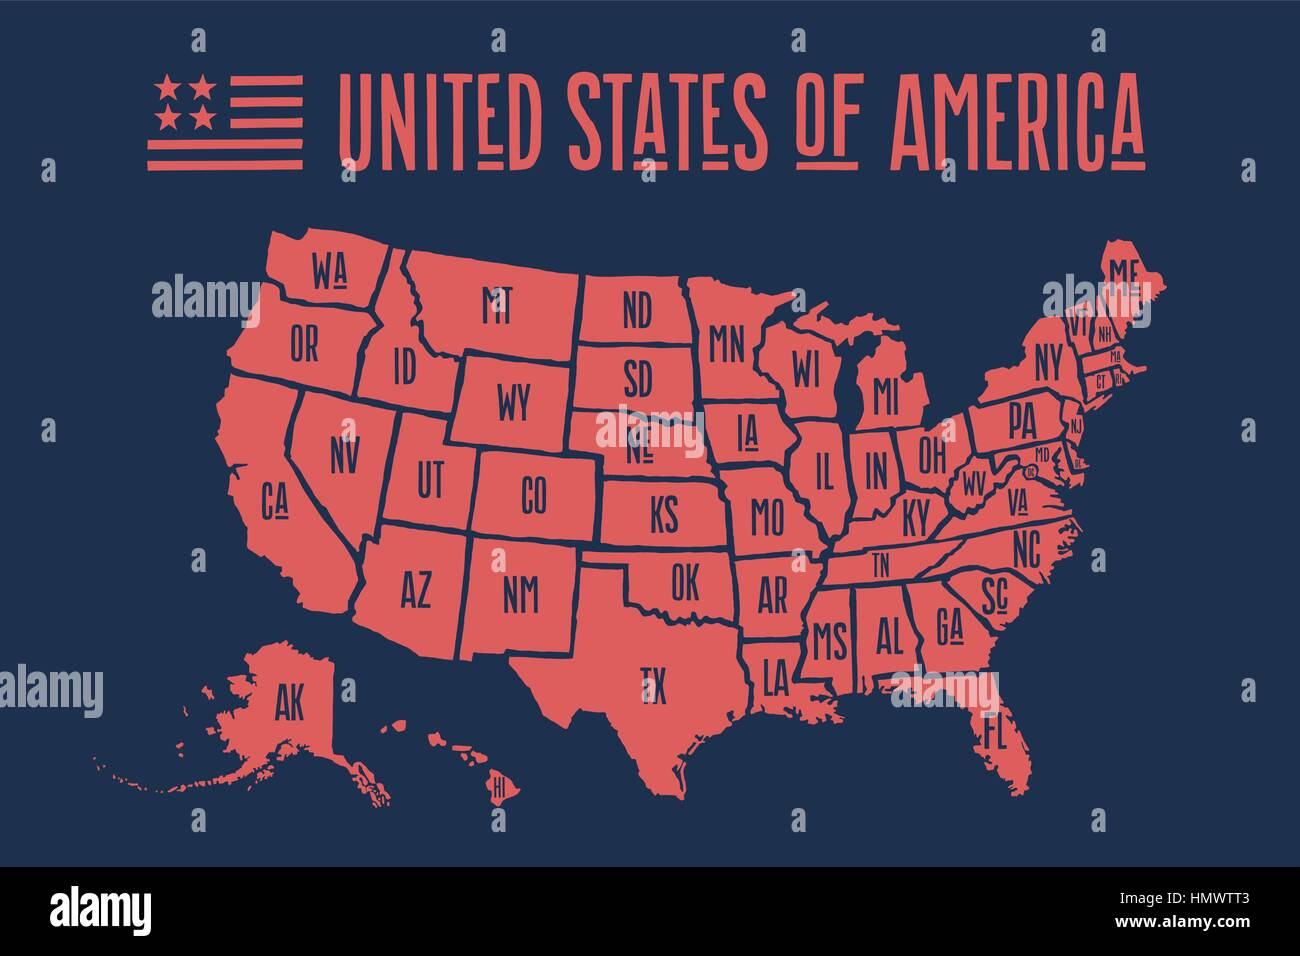 Poster Map United States Of America With State Names Stock Vector - Map of the united states with names